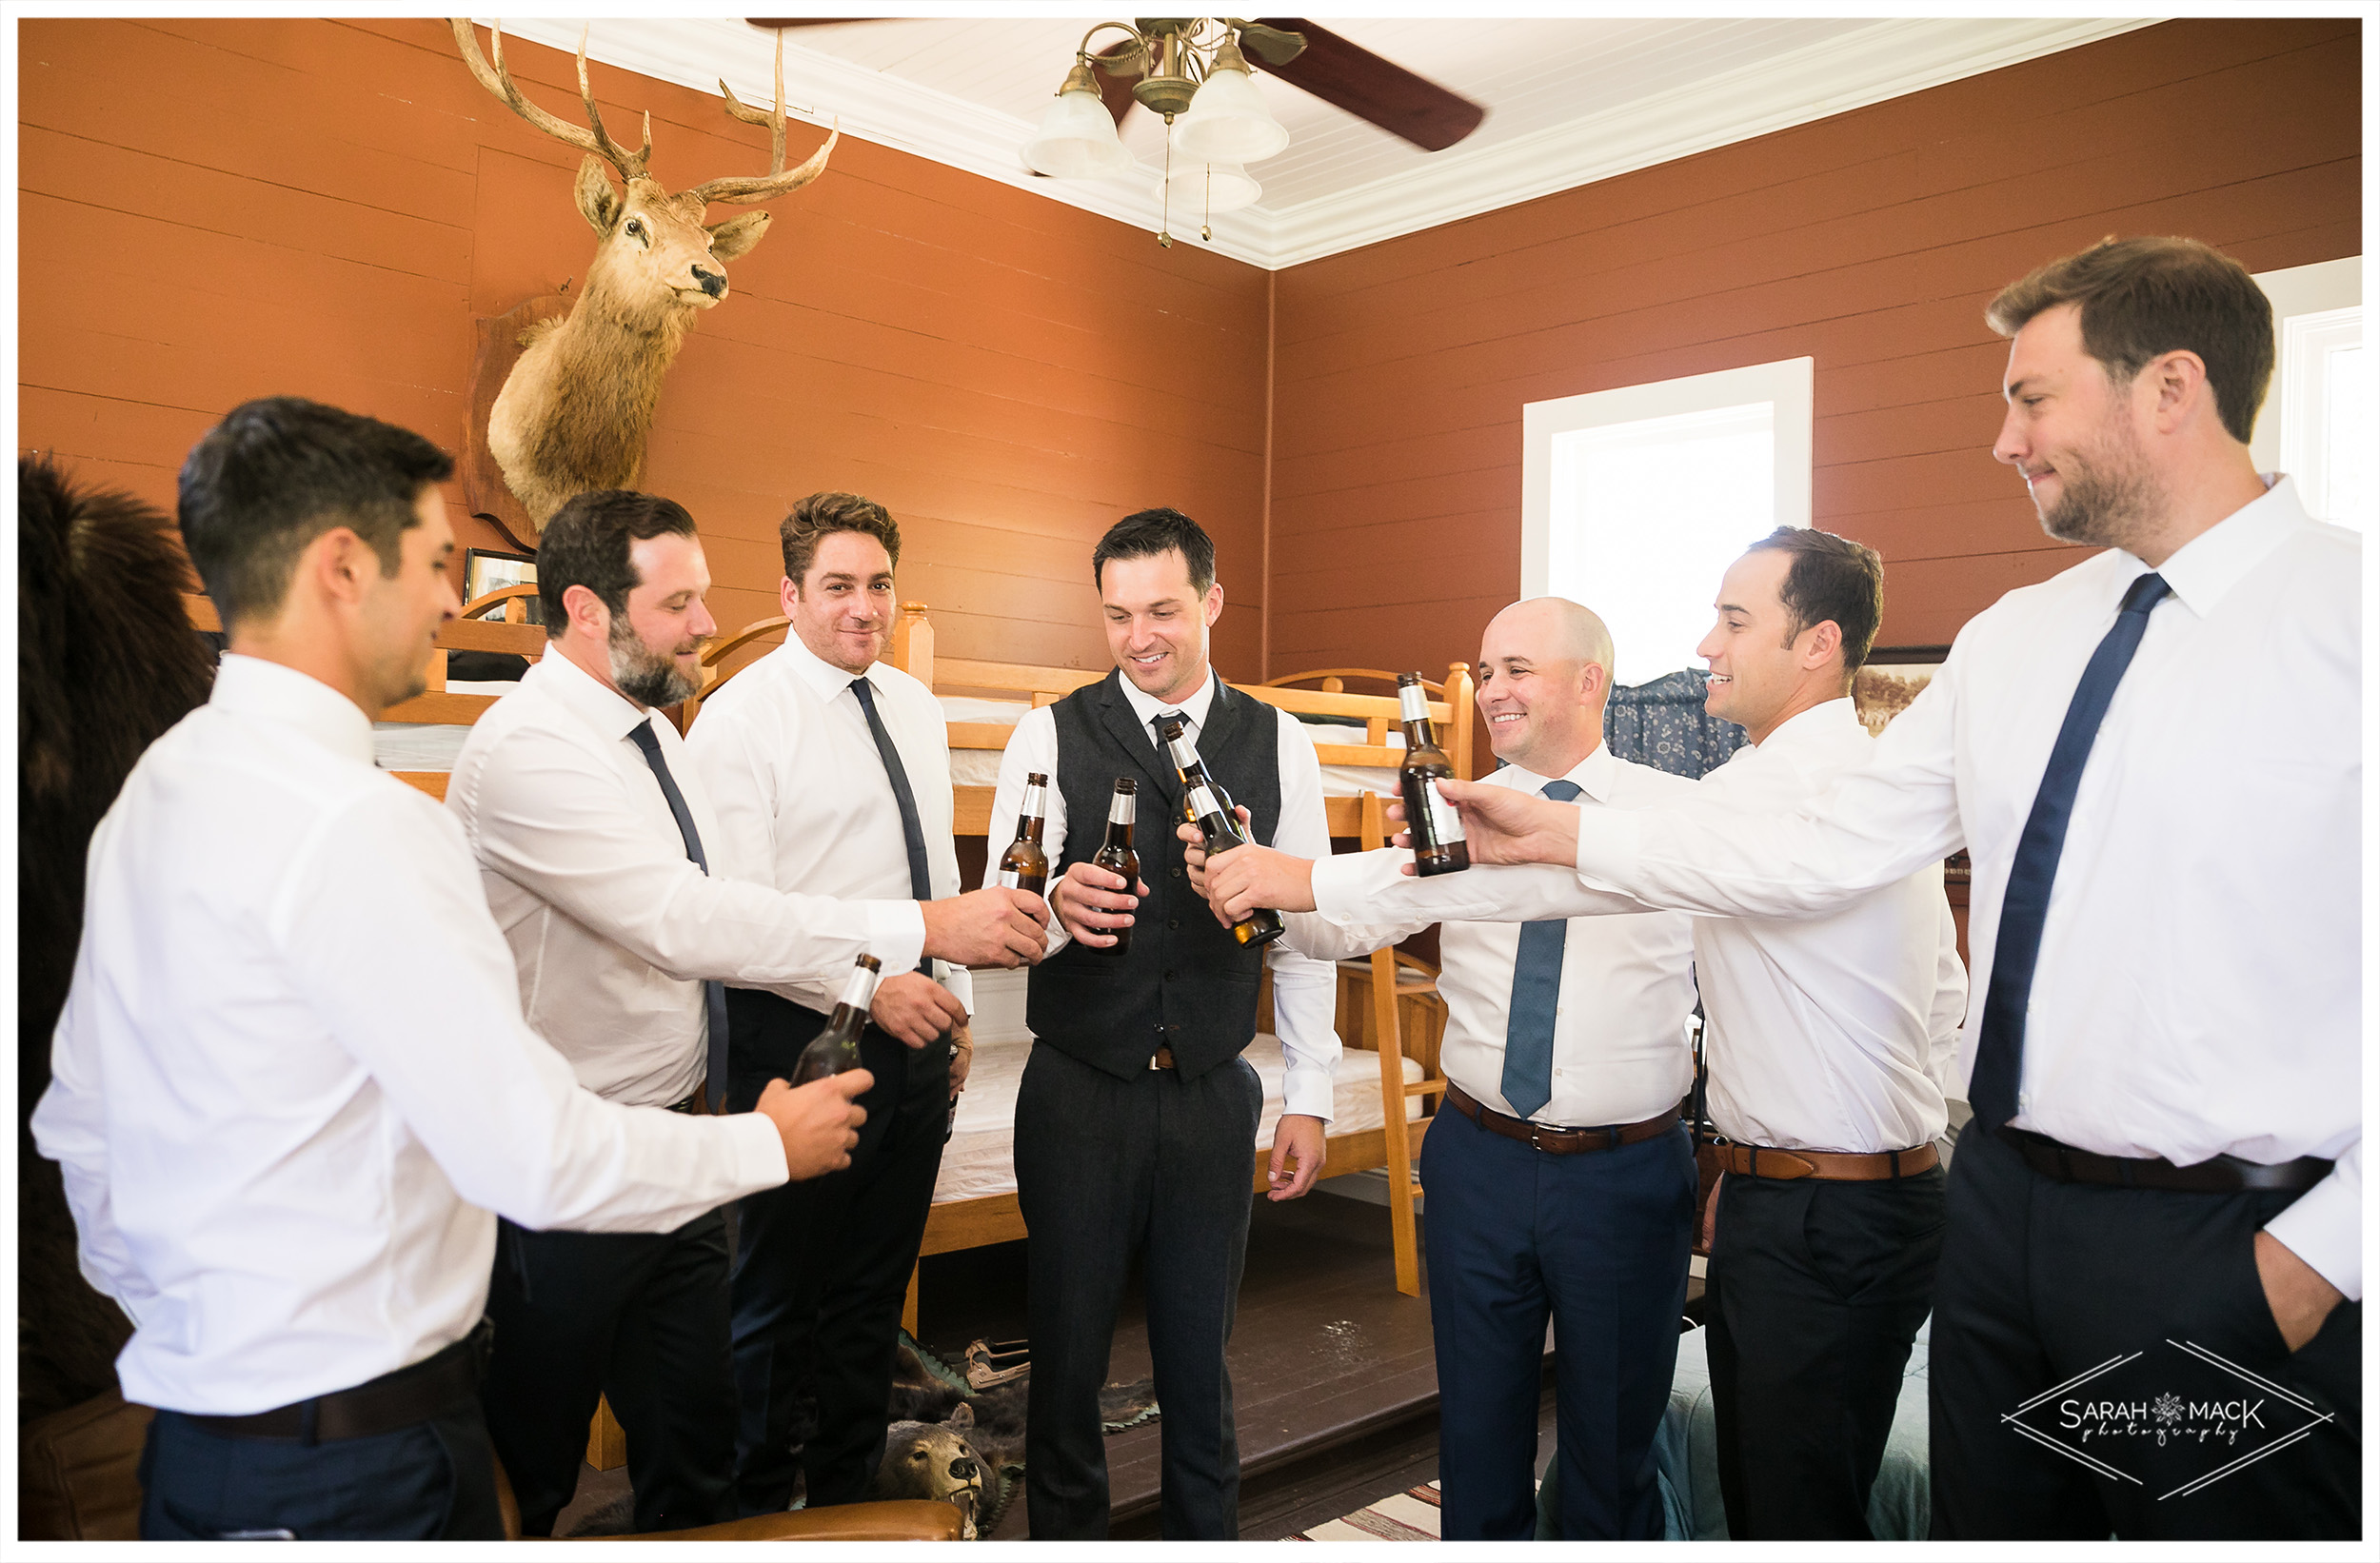 MA-Chandler-Ranch-Paso-Robles-Wedding-Photography-25.jpg